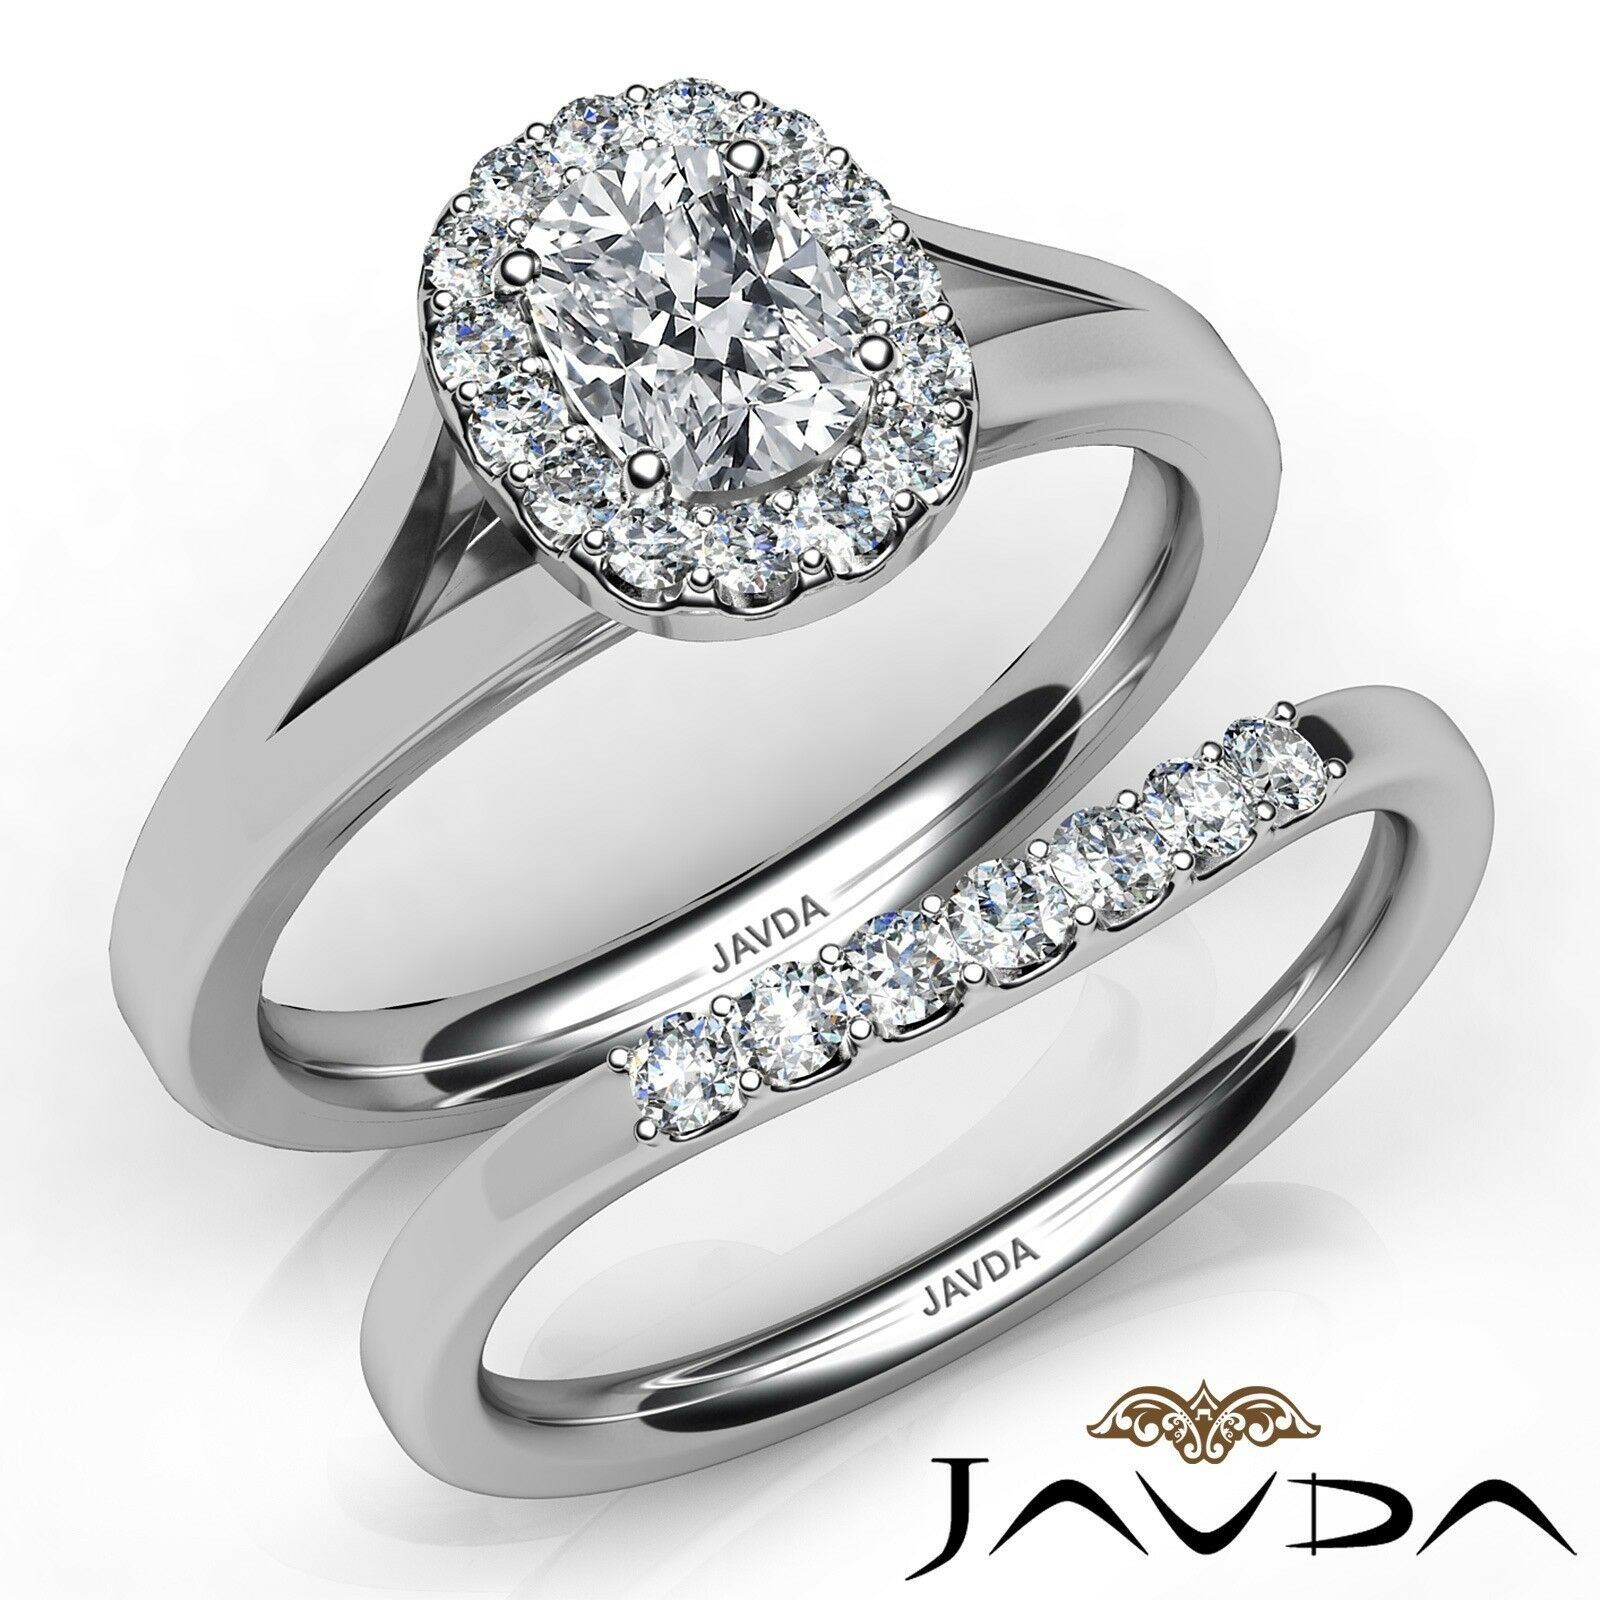 1.44ctw Cathedral Style Bridal Cushion Diamond Engagement Ring GIA I-VVS1 W Gold